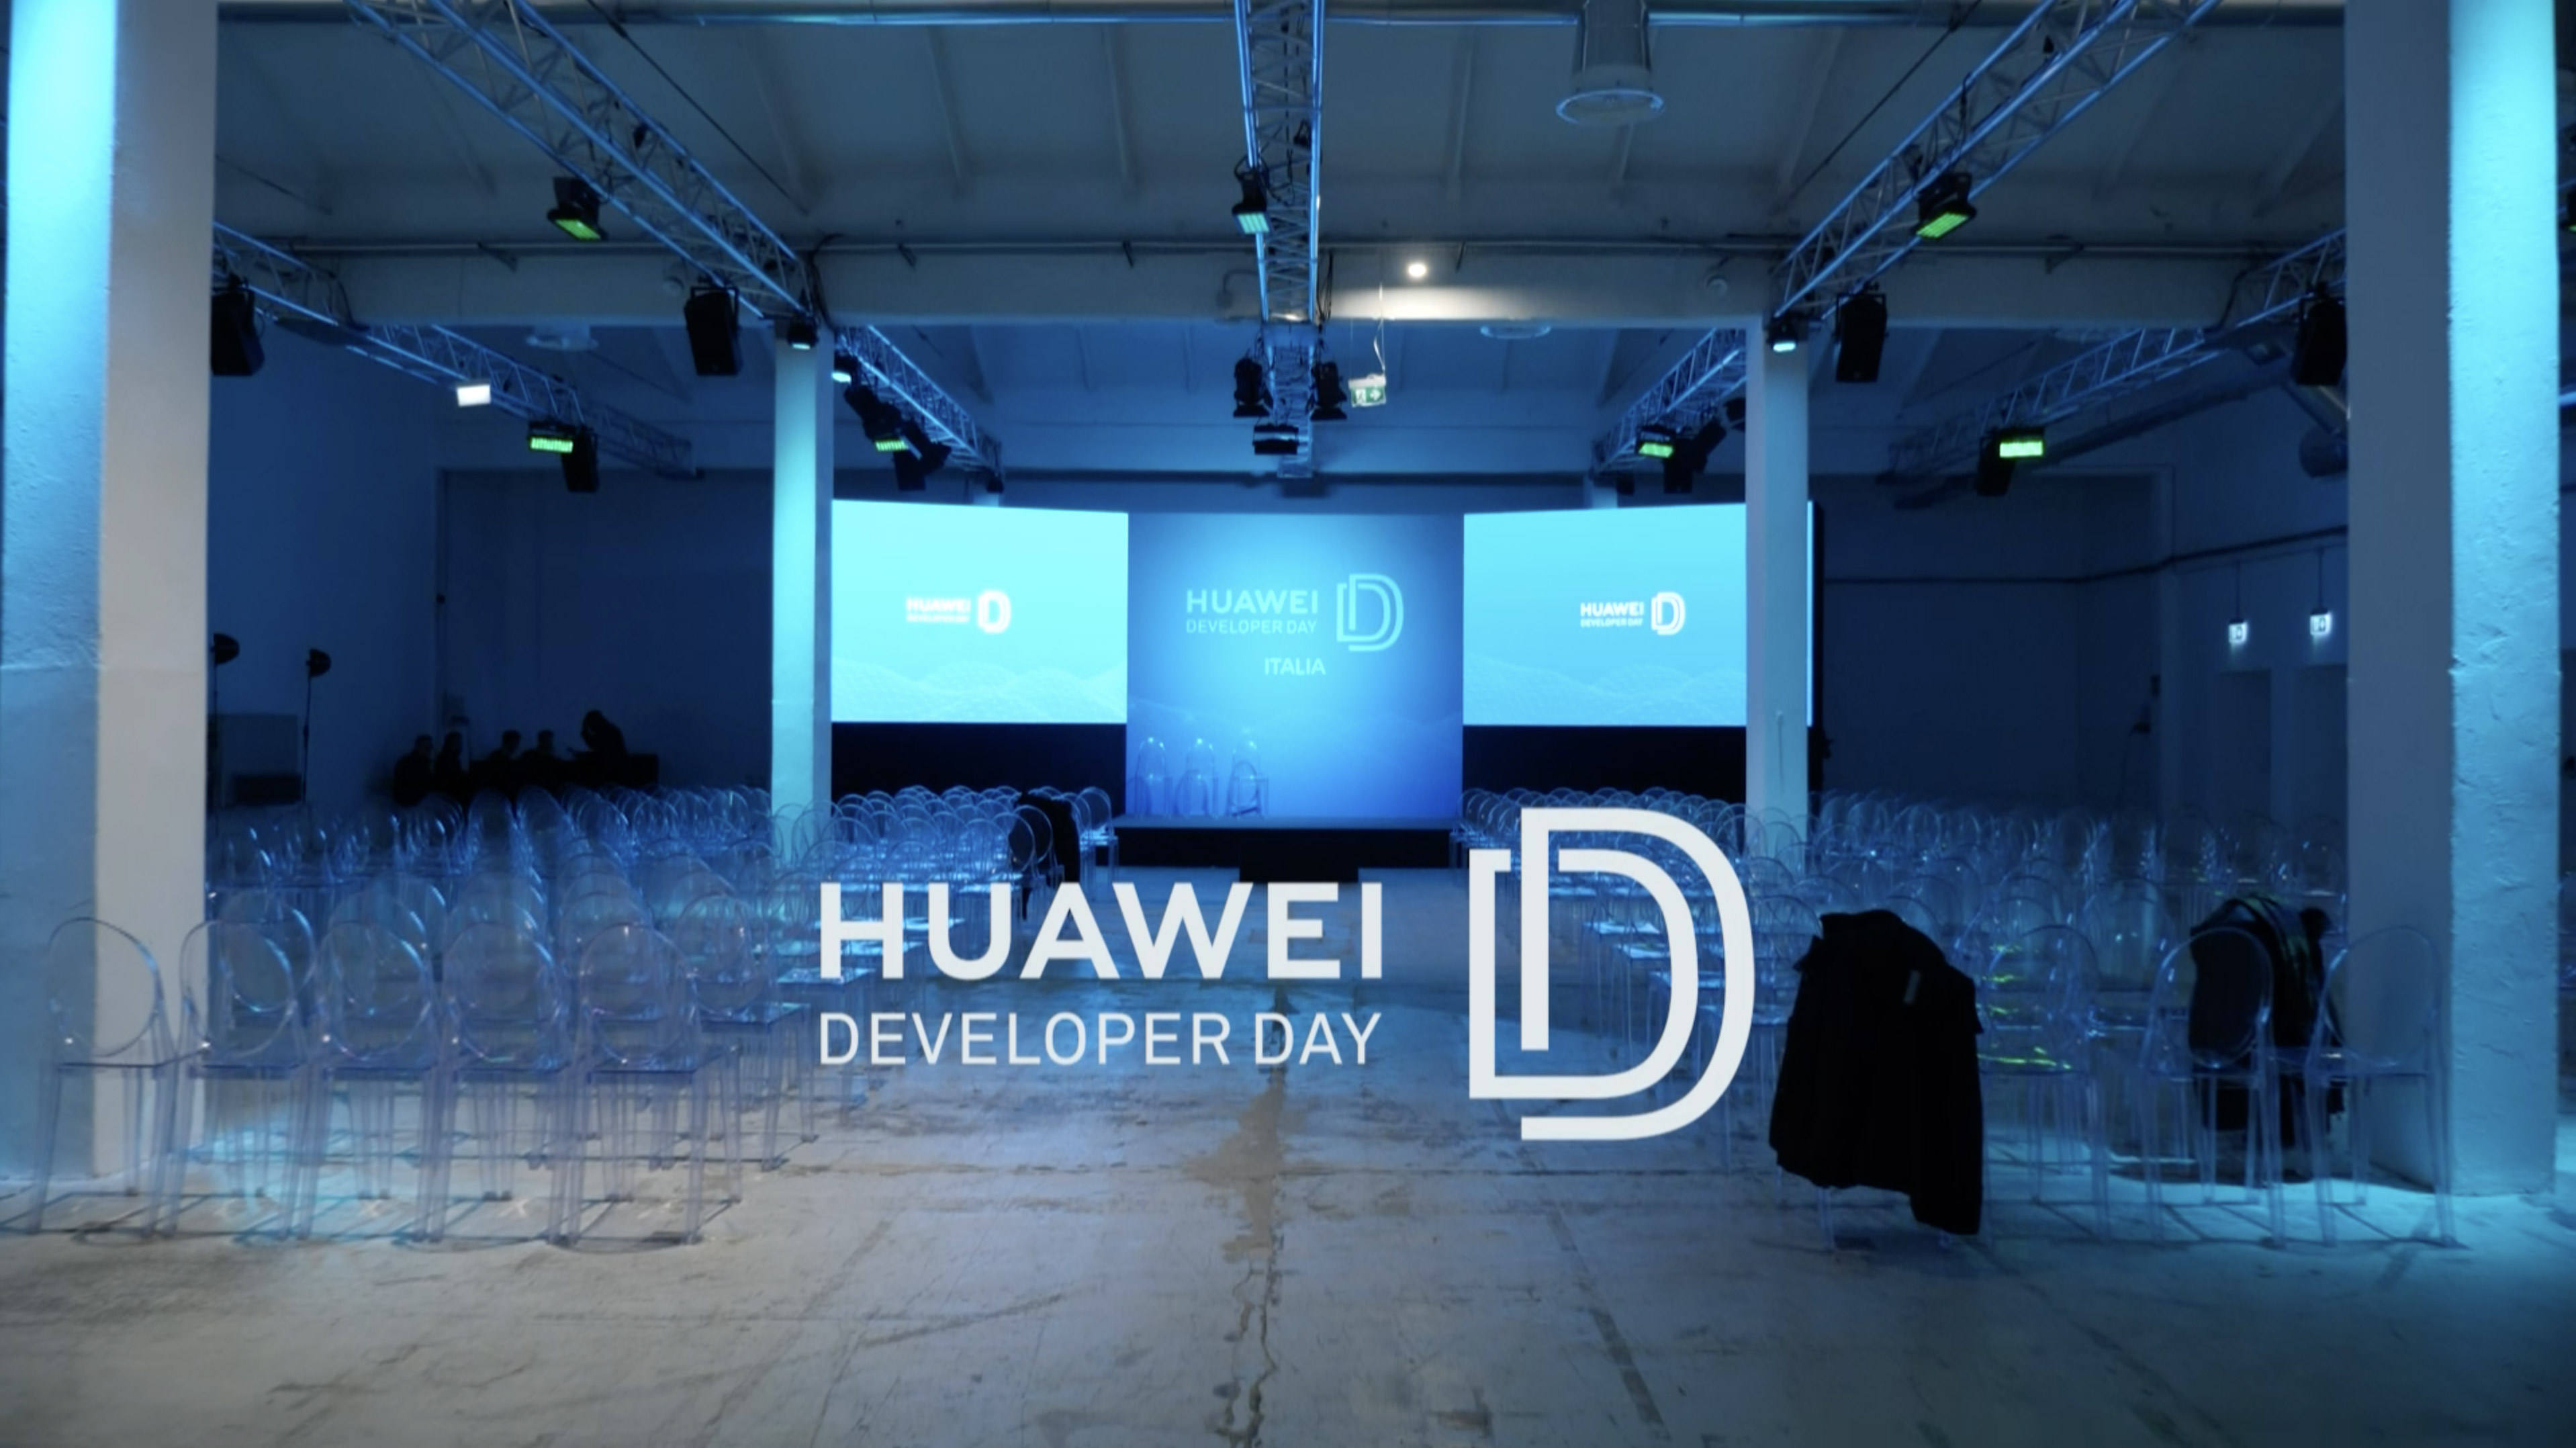 huawei developer day video